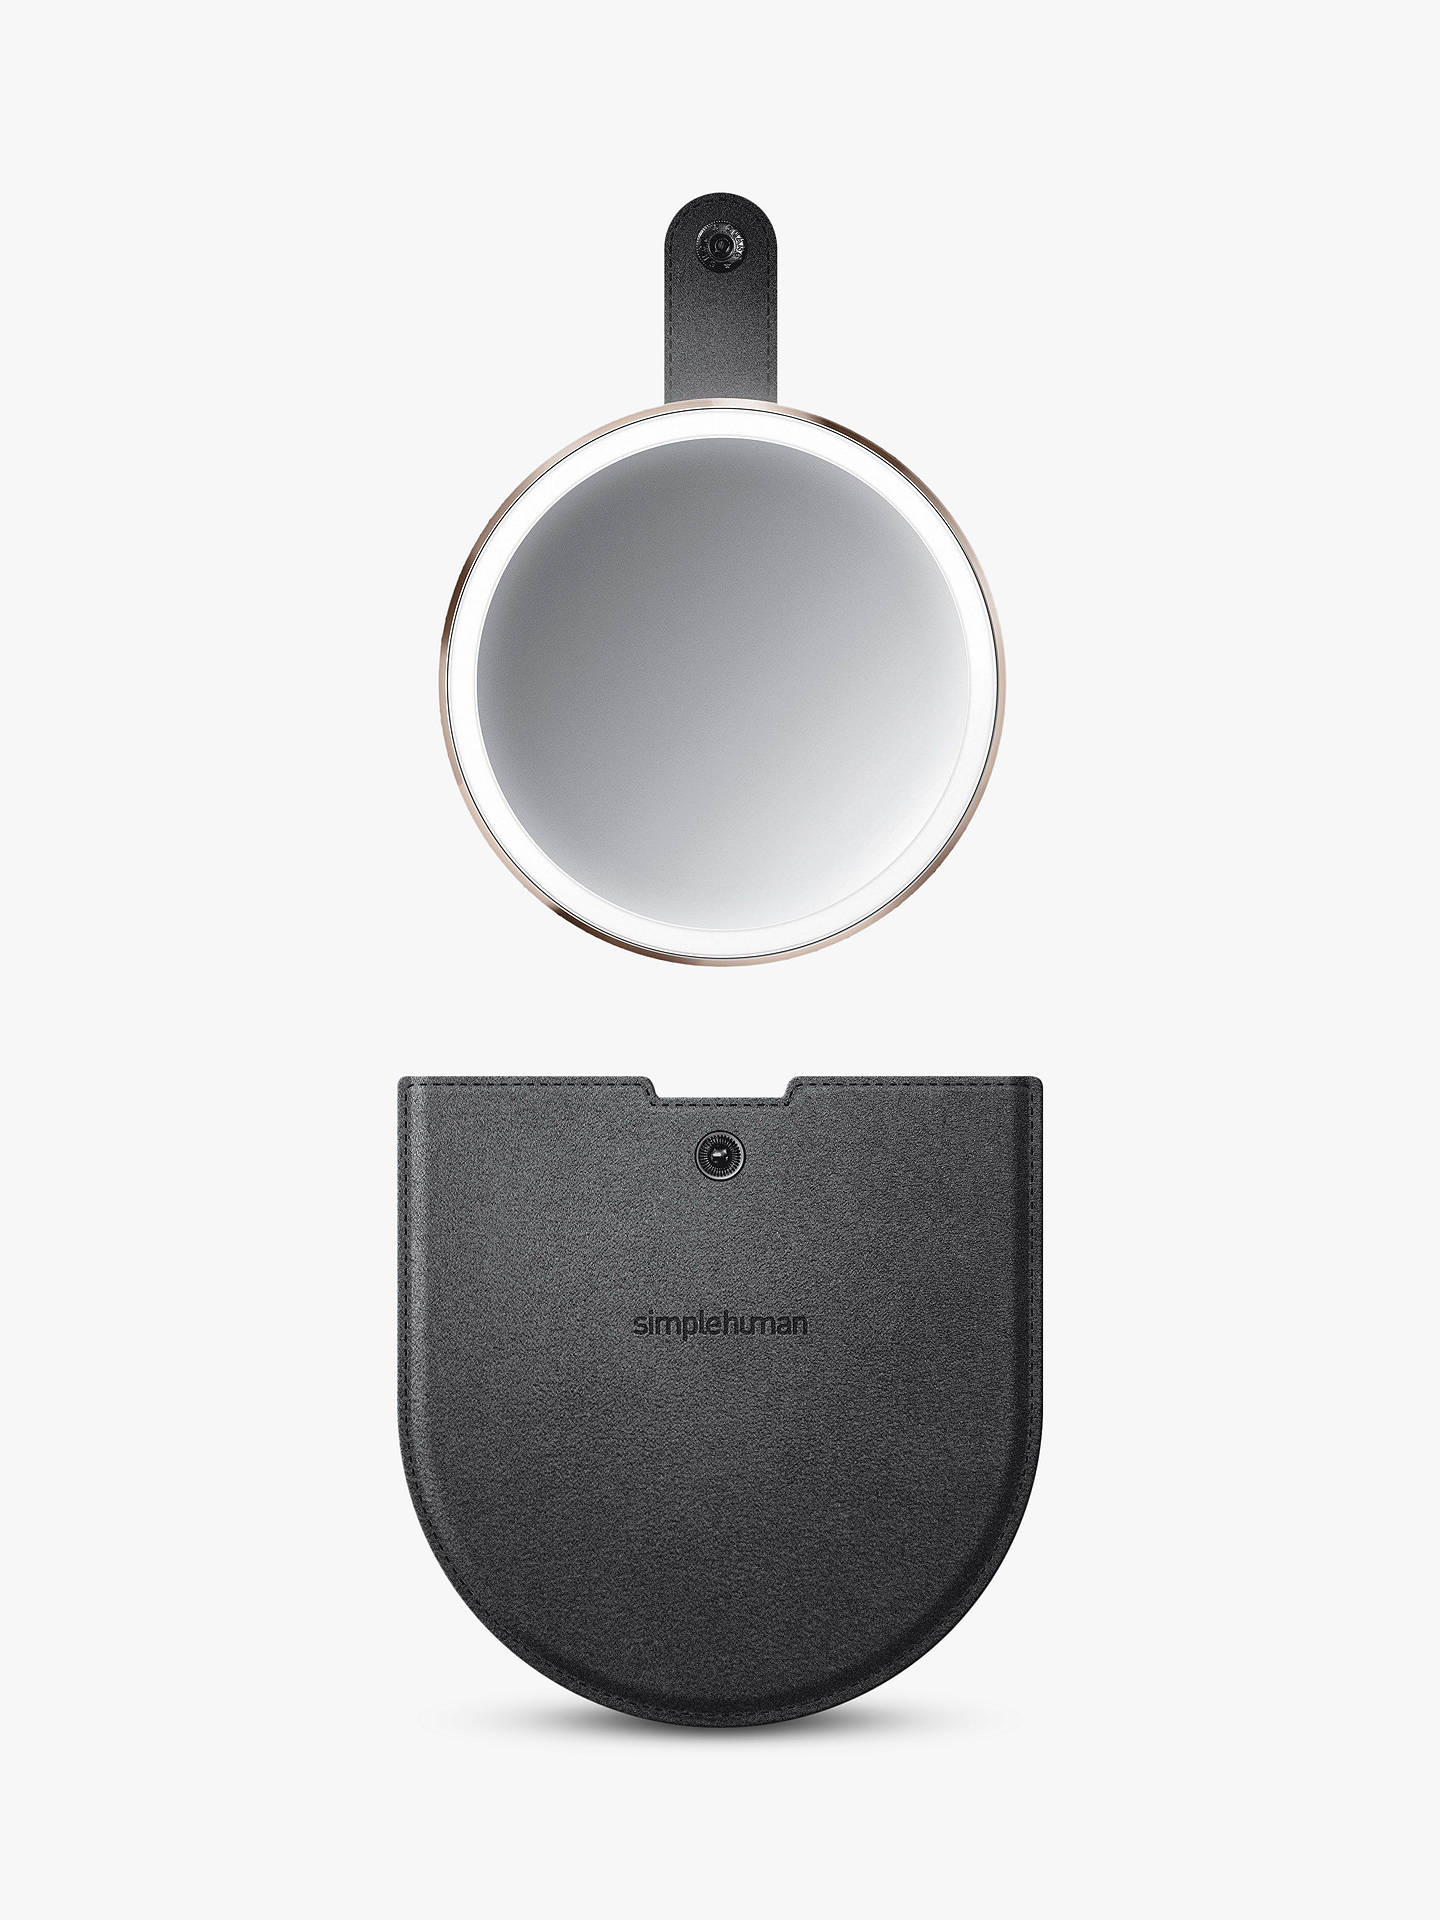 Buy simplehuman Compact Mirror, Rose Gold Online at johnlewis.com